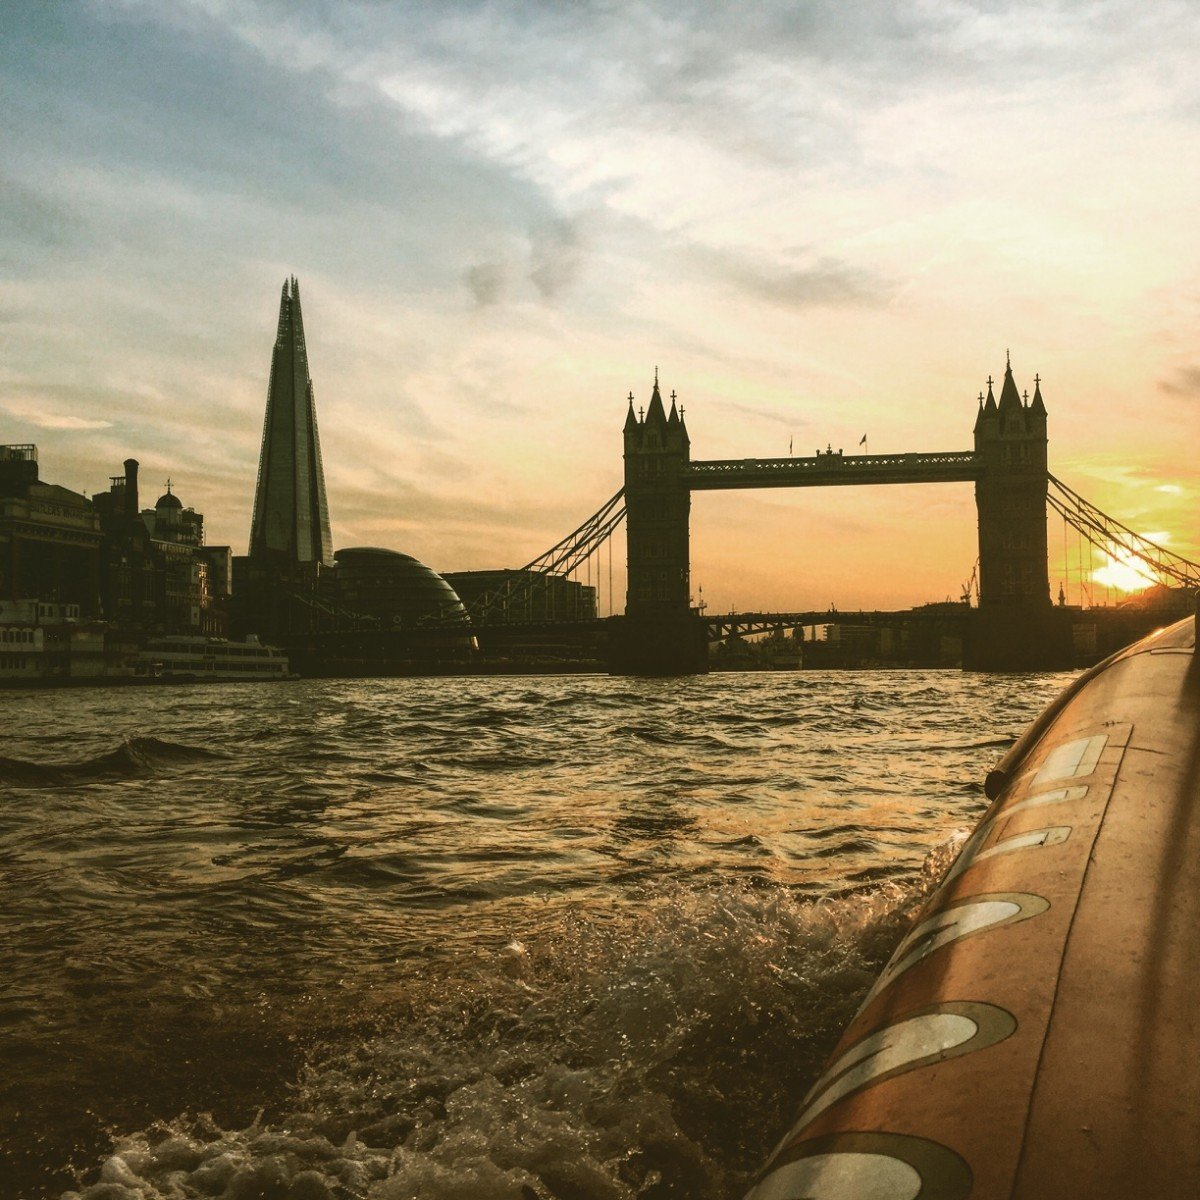 Clink Hostels Thames Lates Things to do London this weekend